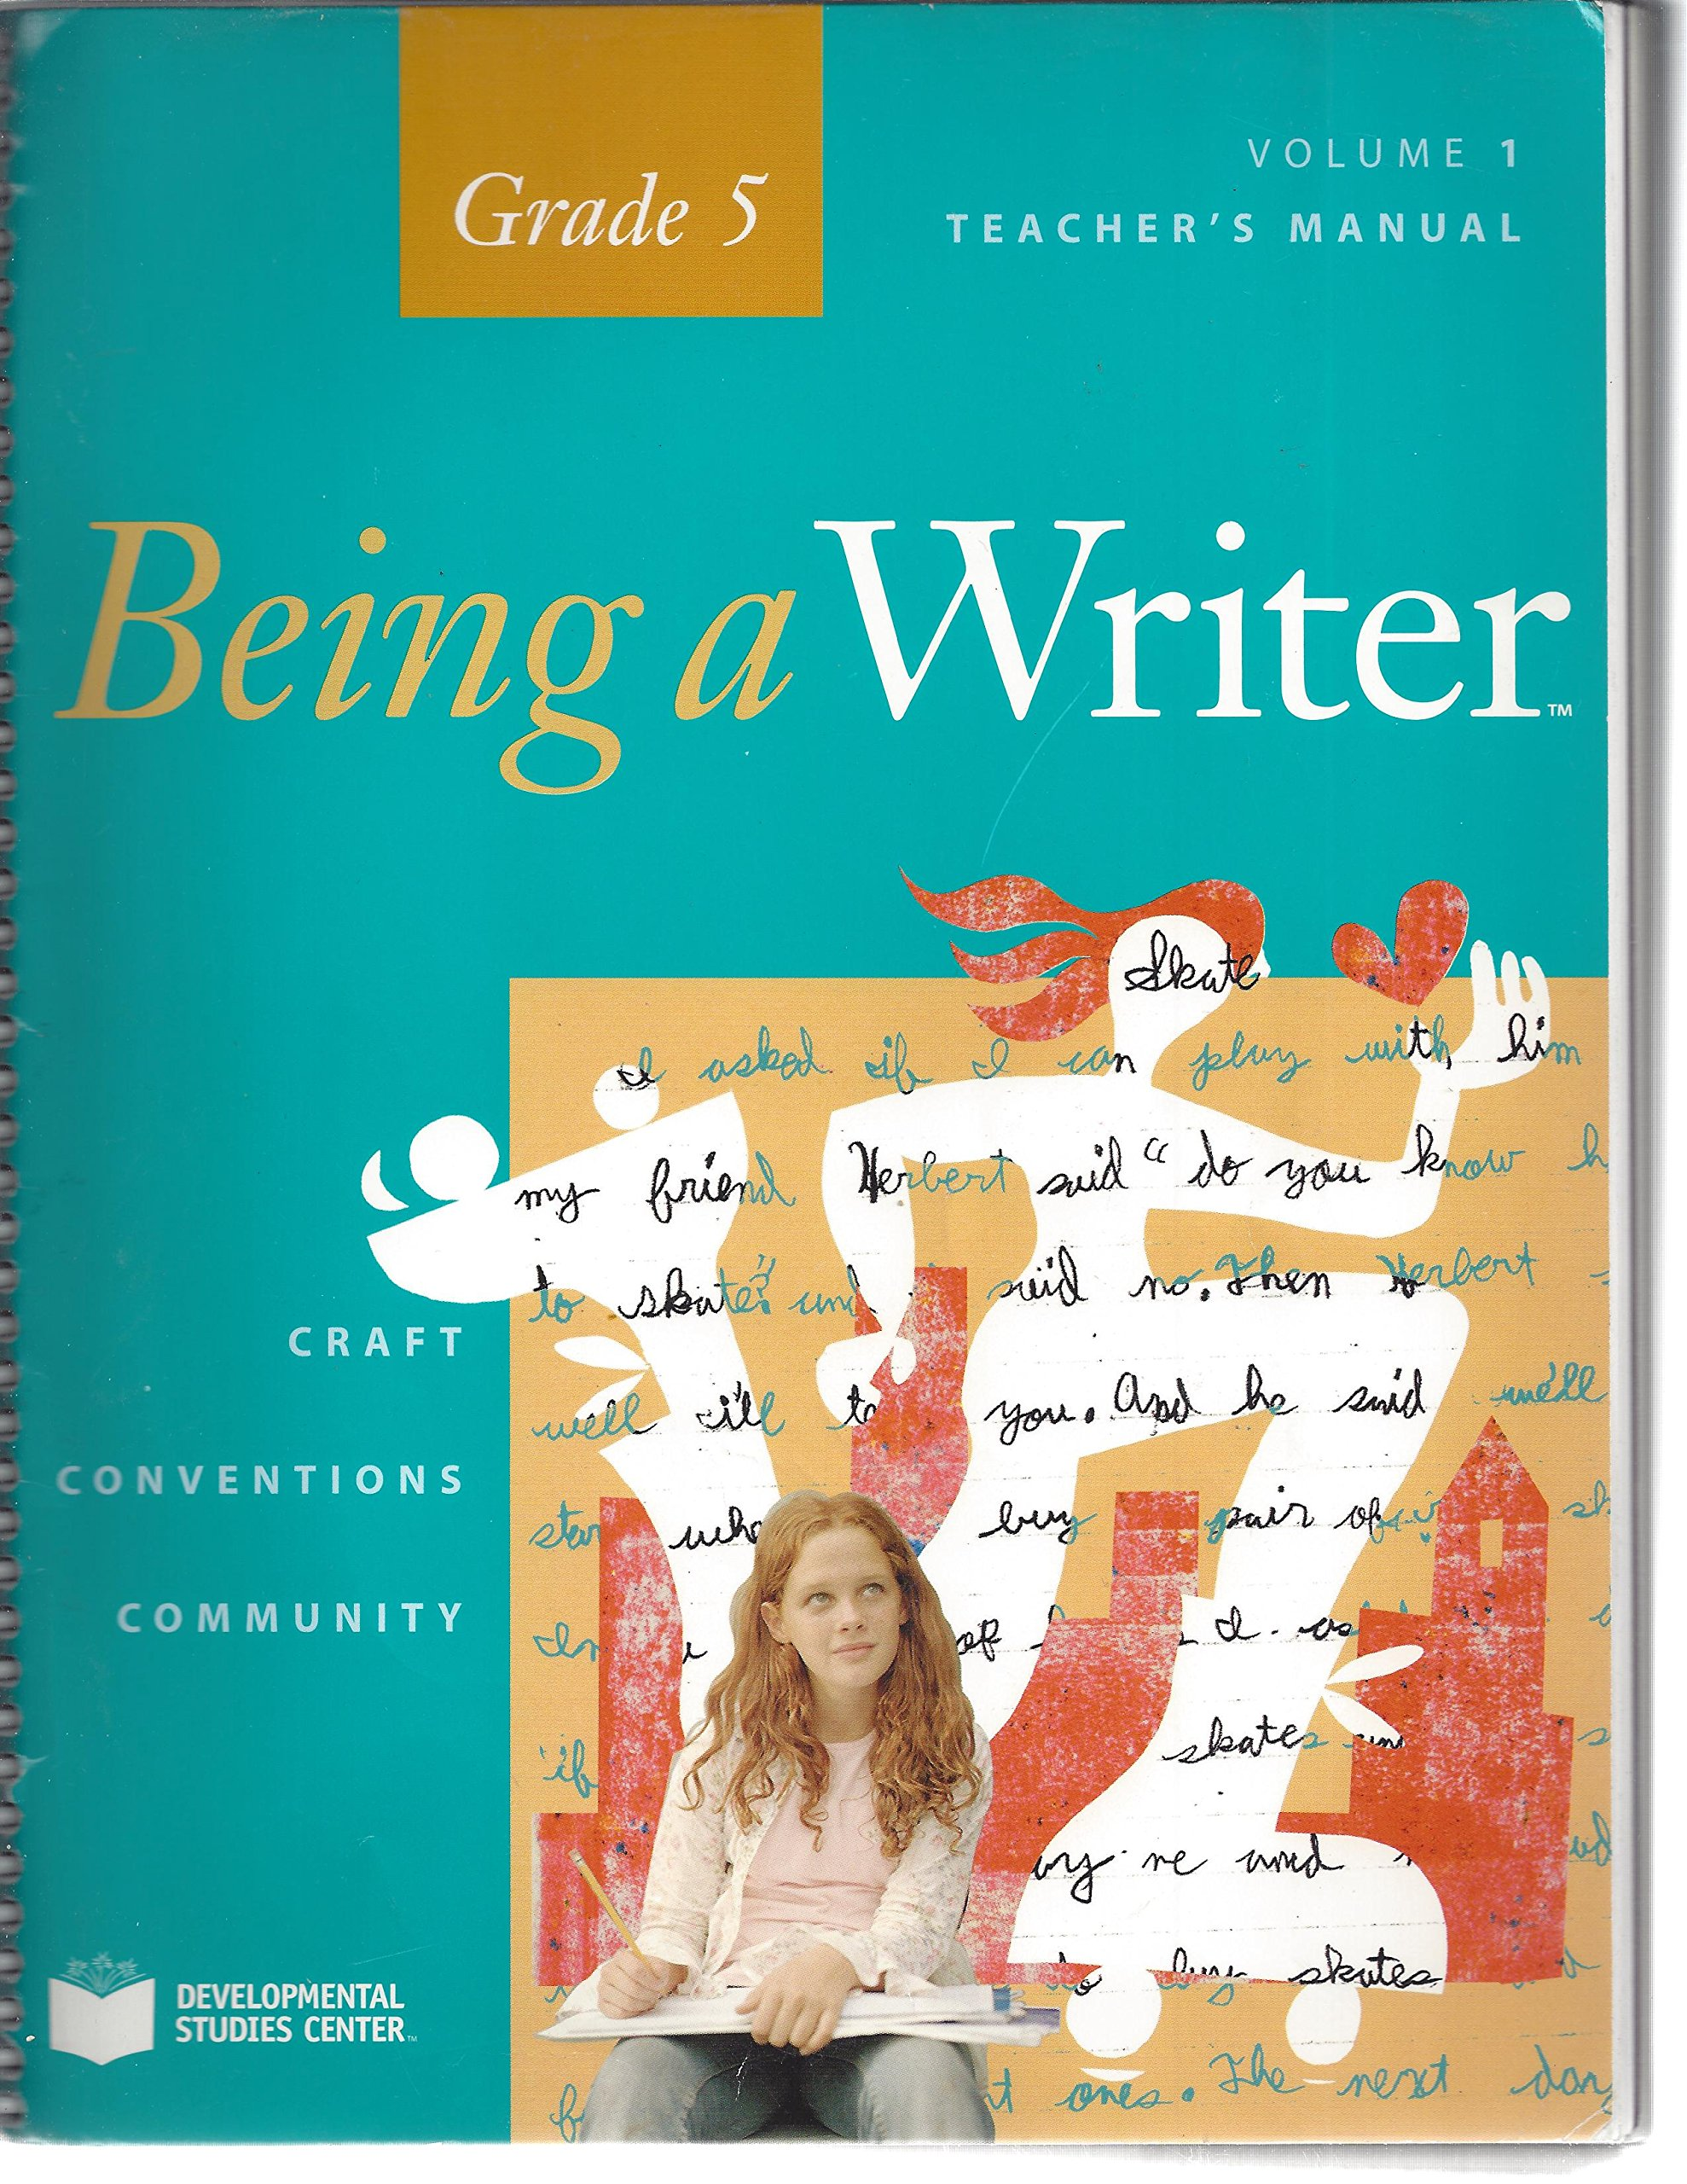 Being a Writer, Teacher's Manual, Volume 1, Grade 5: Various/Multiple:  9781598923421: Amazon.com: Books